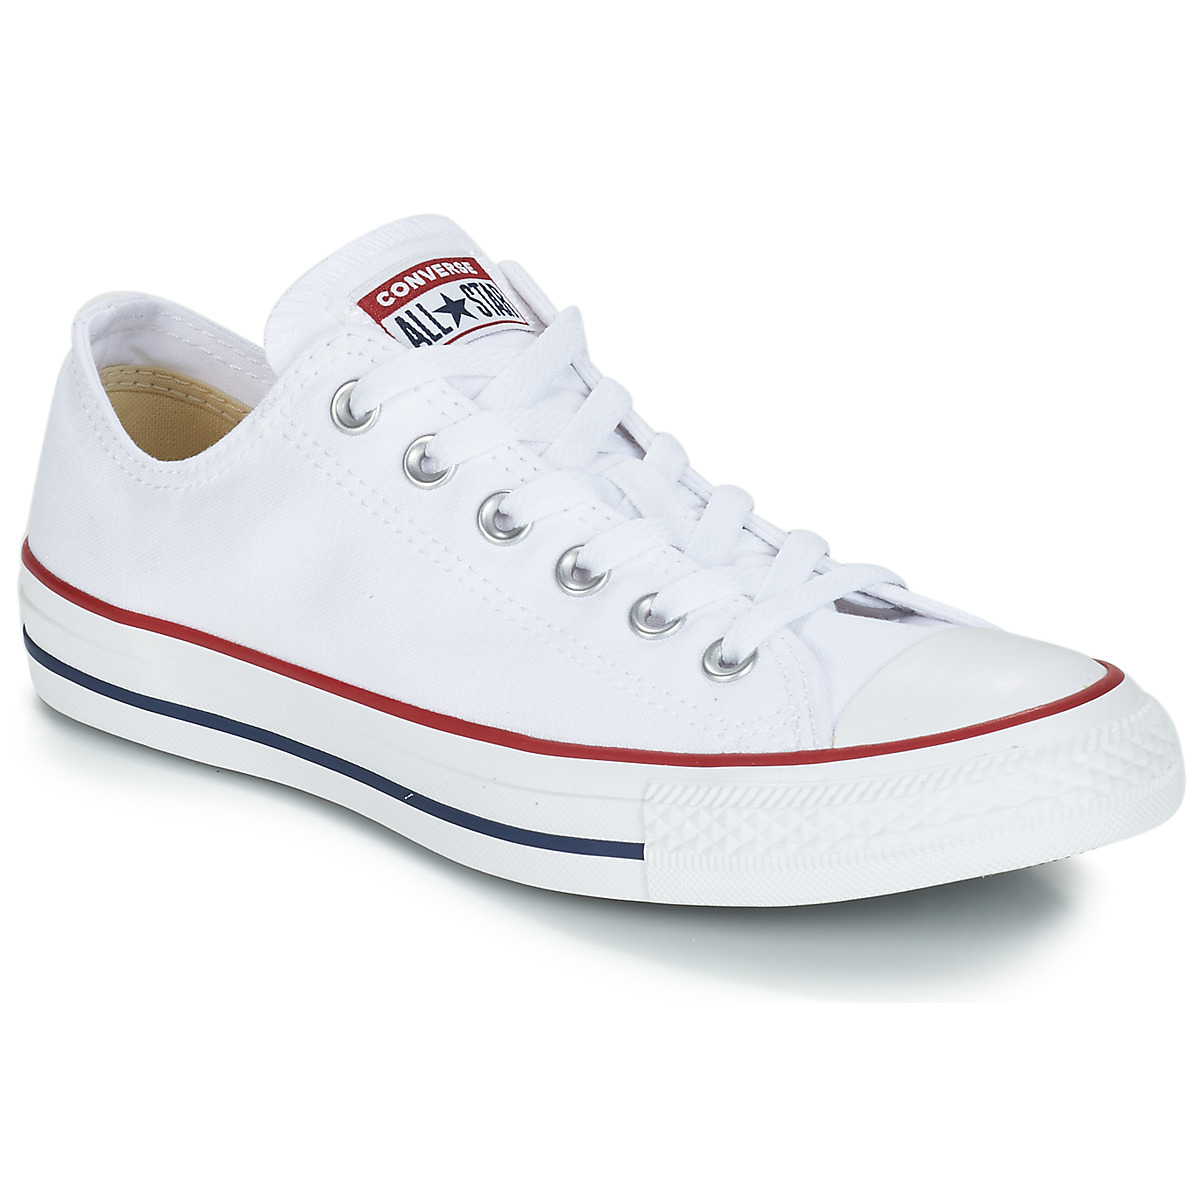 Converse CHUCK TAYLOR ALL STAR CORE OX Branco /